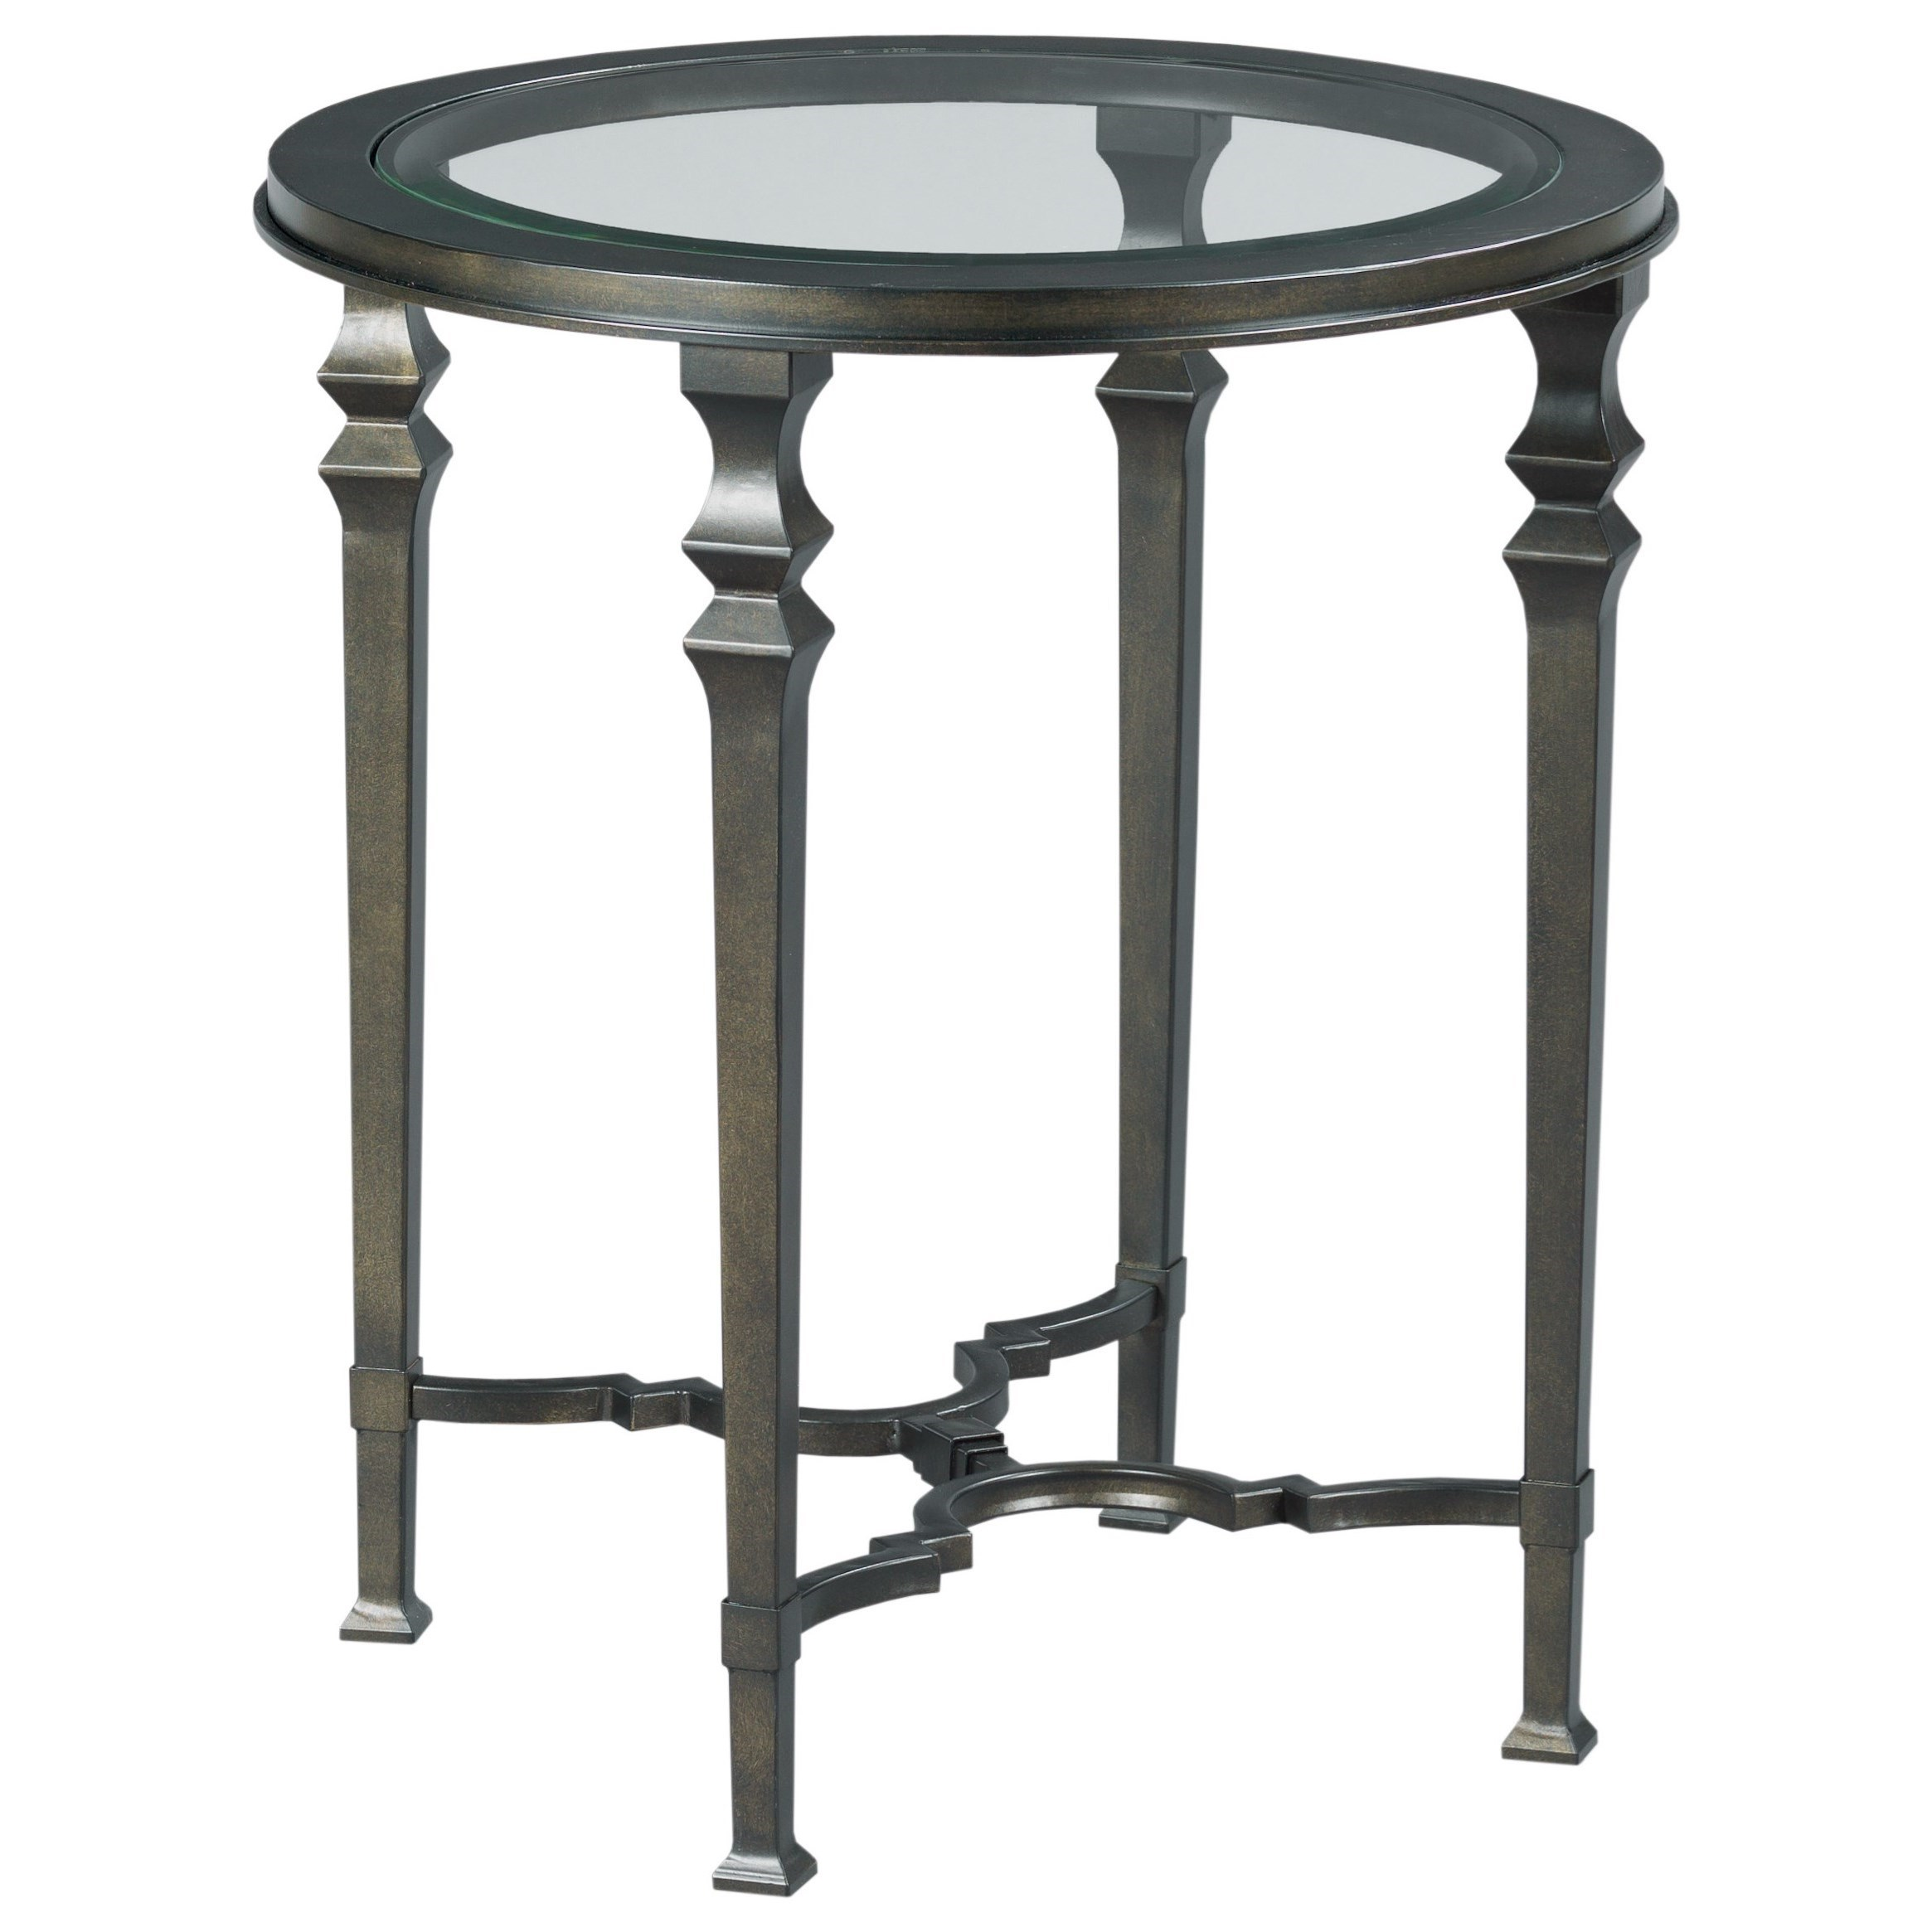 Paragon Round End Table by England at H.L. Stephens